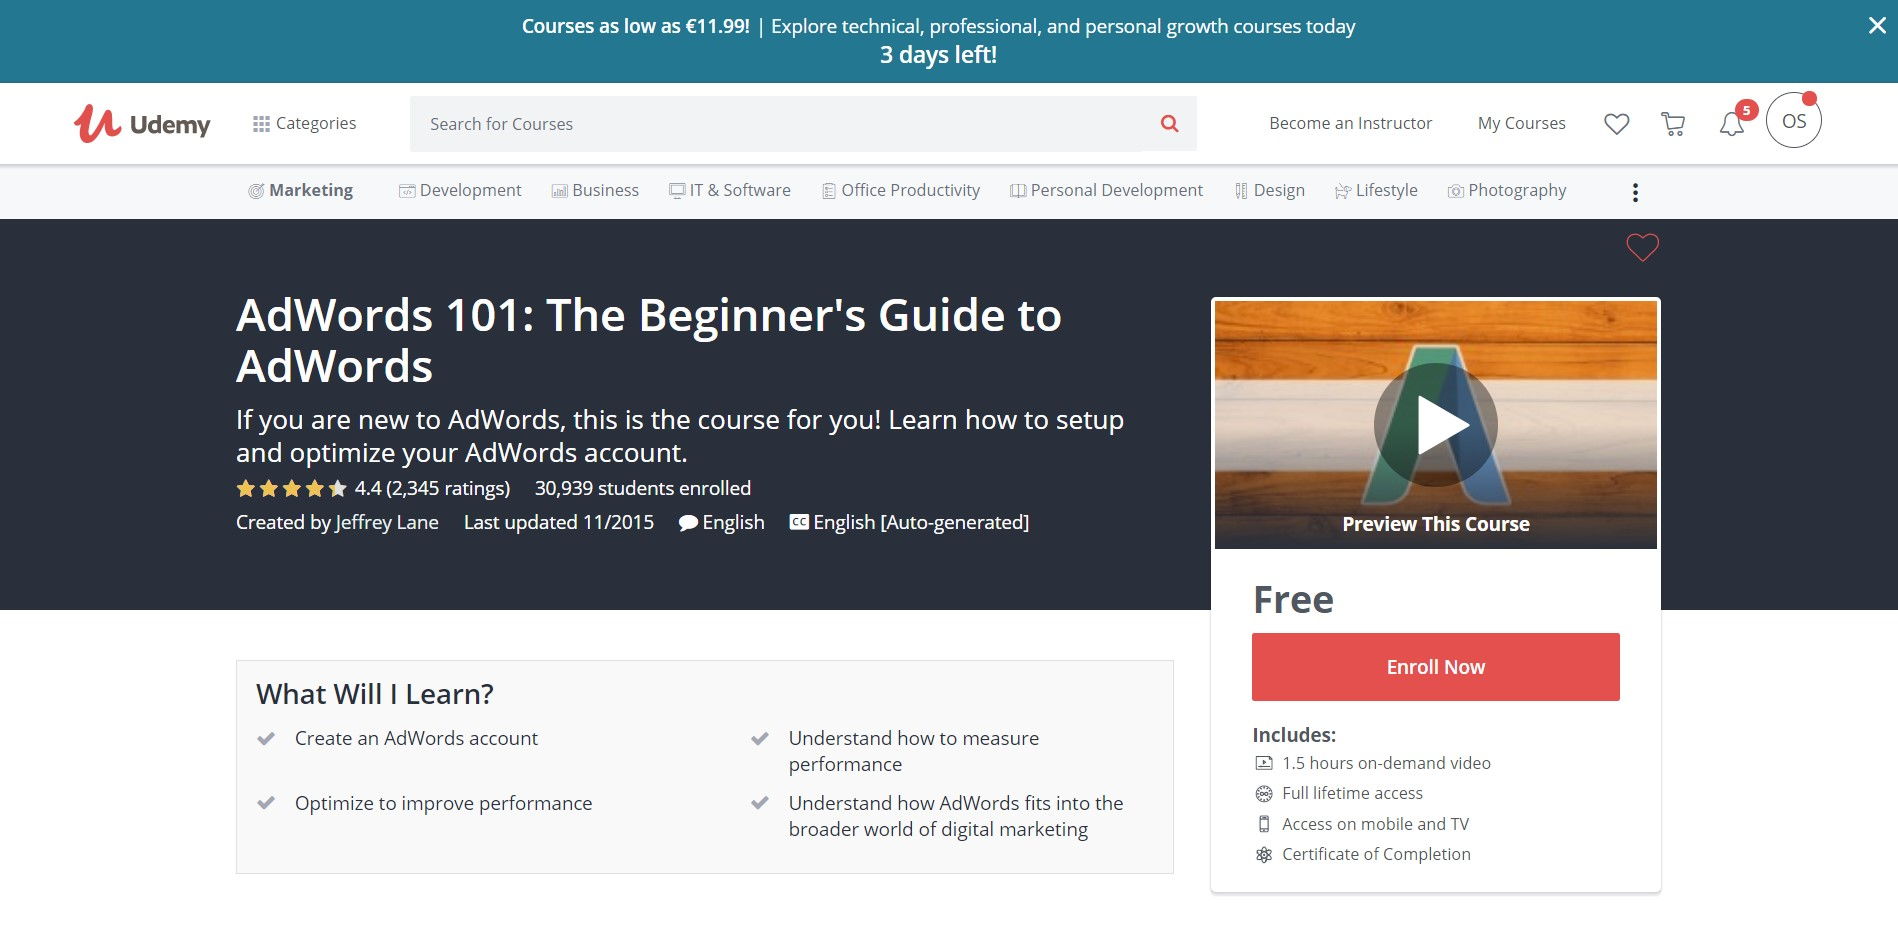 3. Udemy AdWords 101: The Beginner's Guide to AdWords